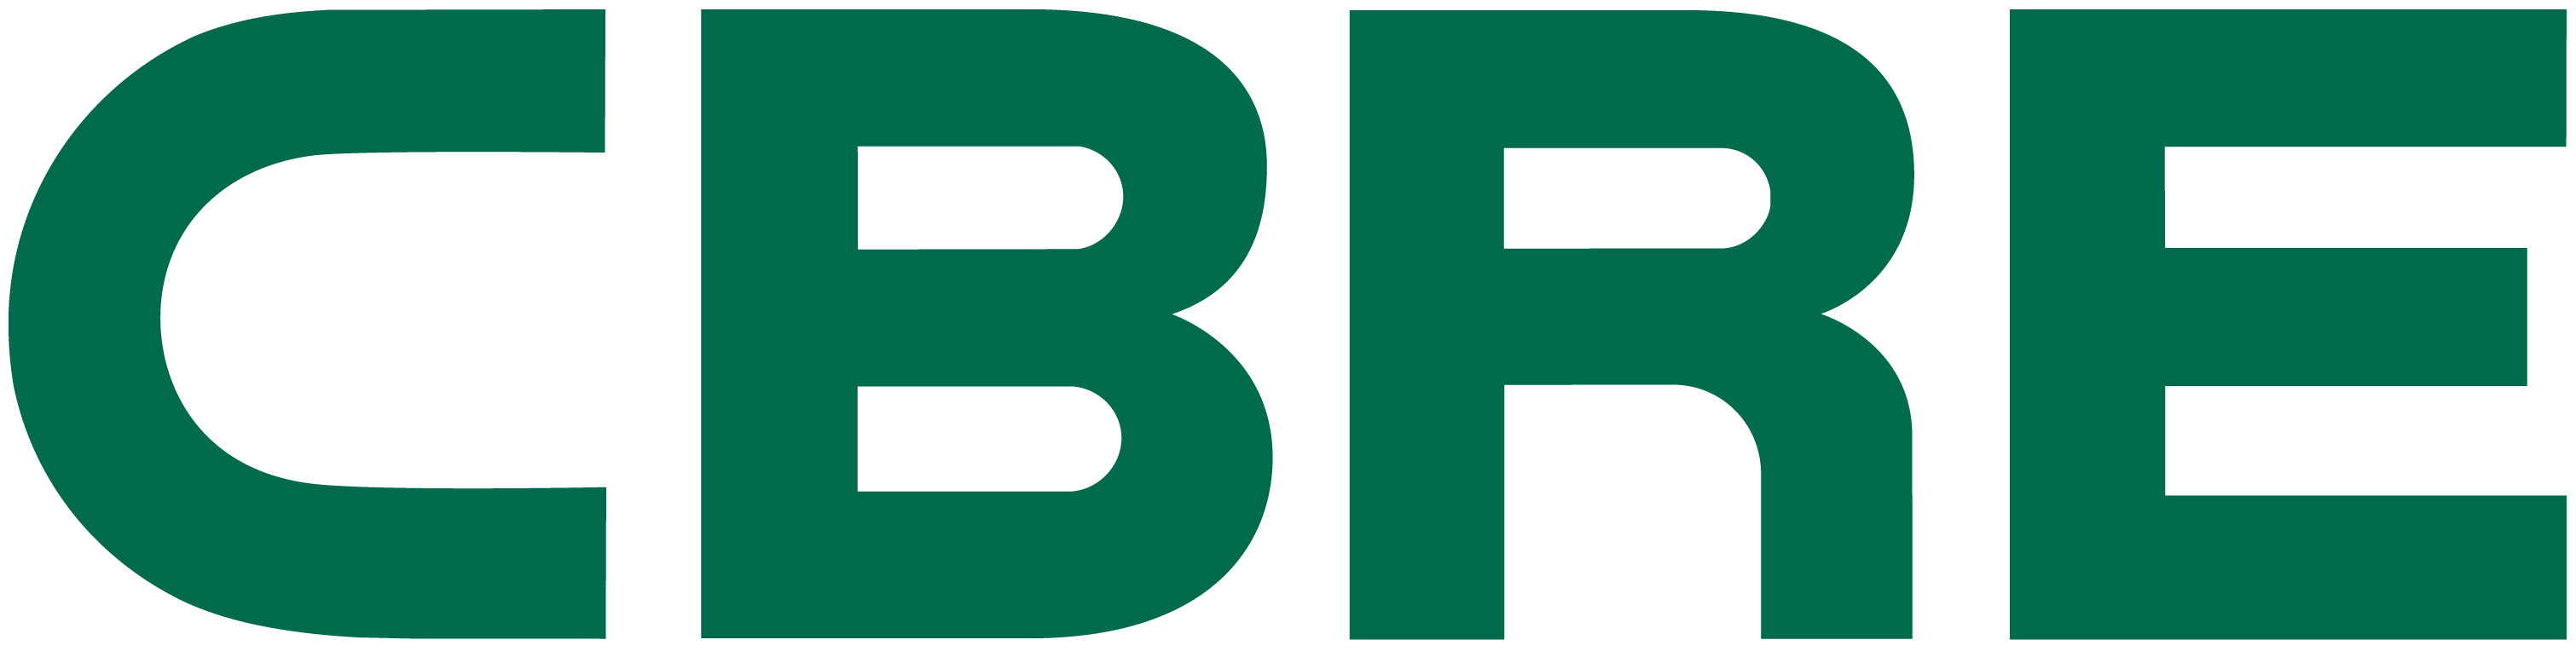 CBRE Group, Inc